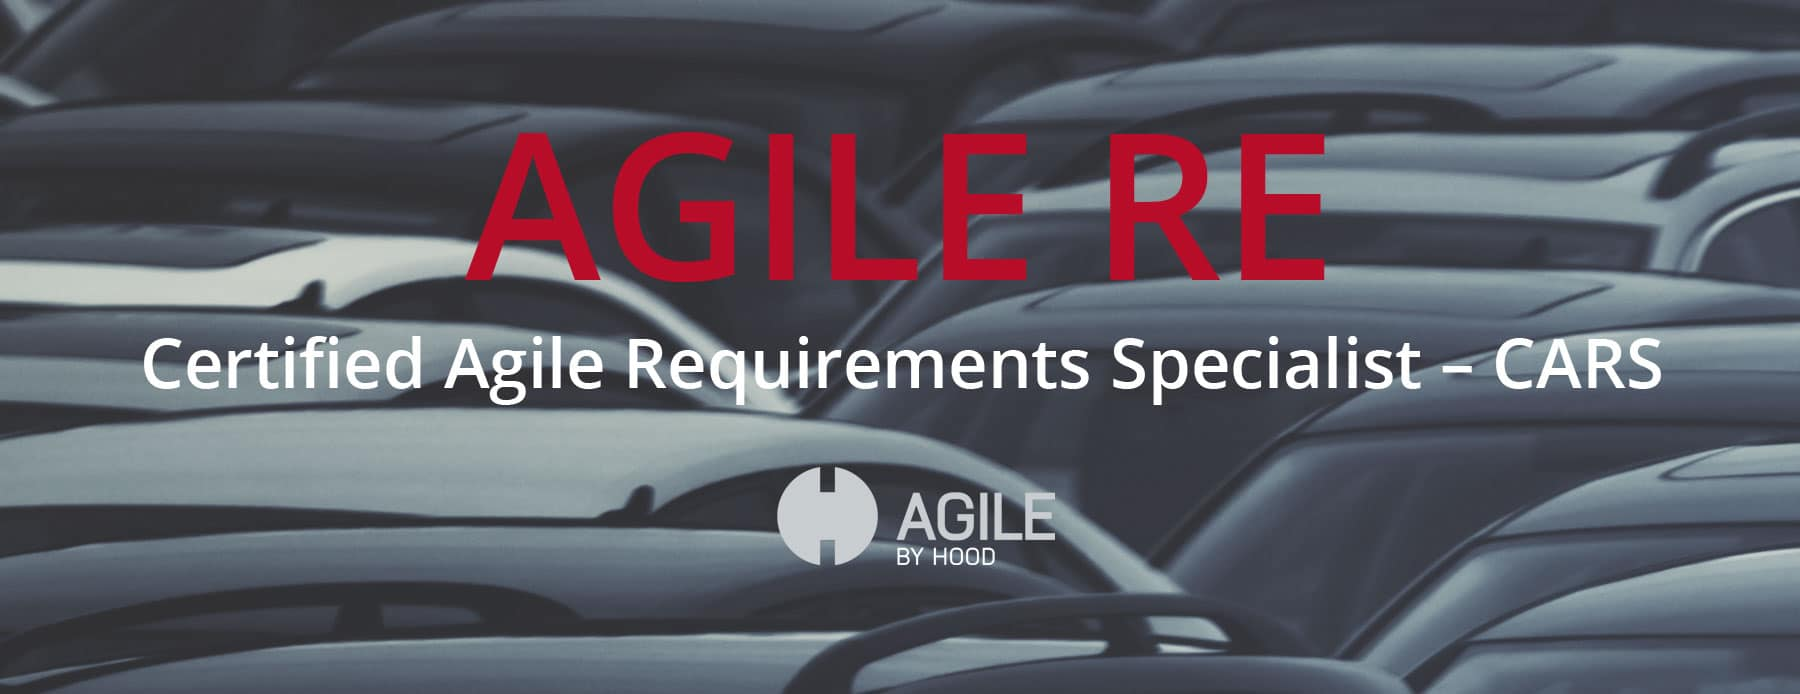 Certified Agile Requirements Specialist (CARS)